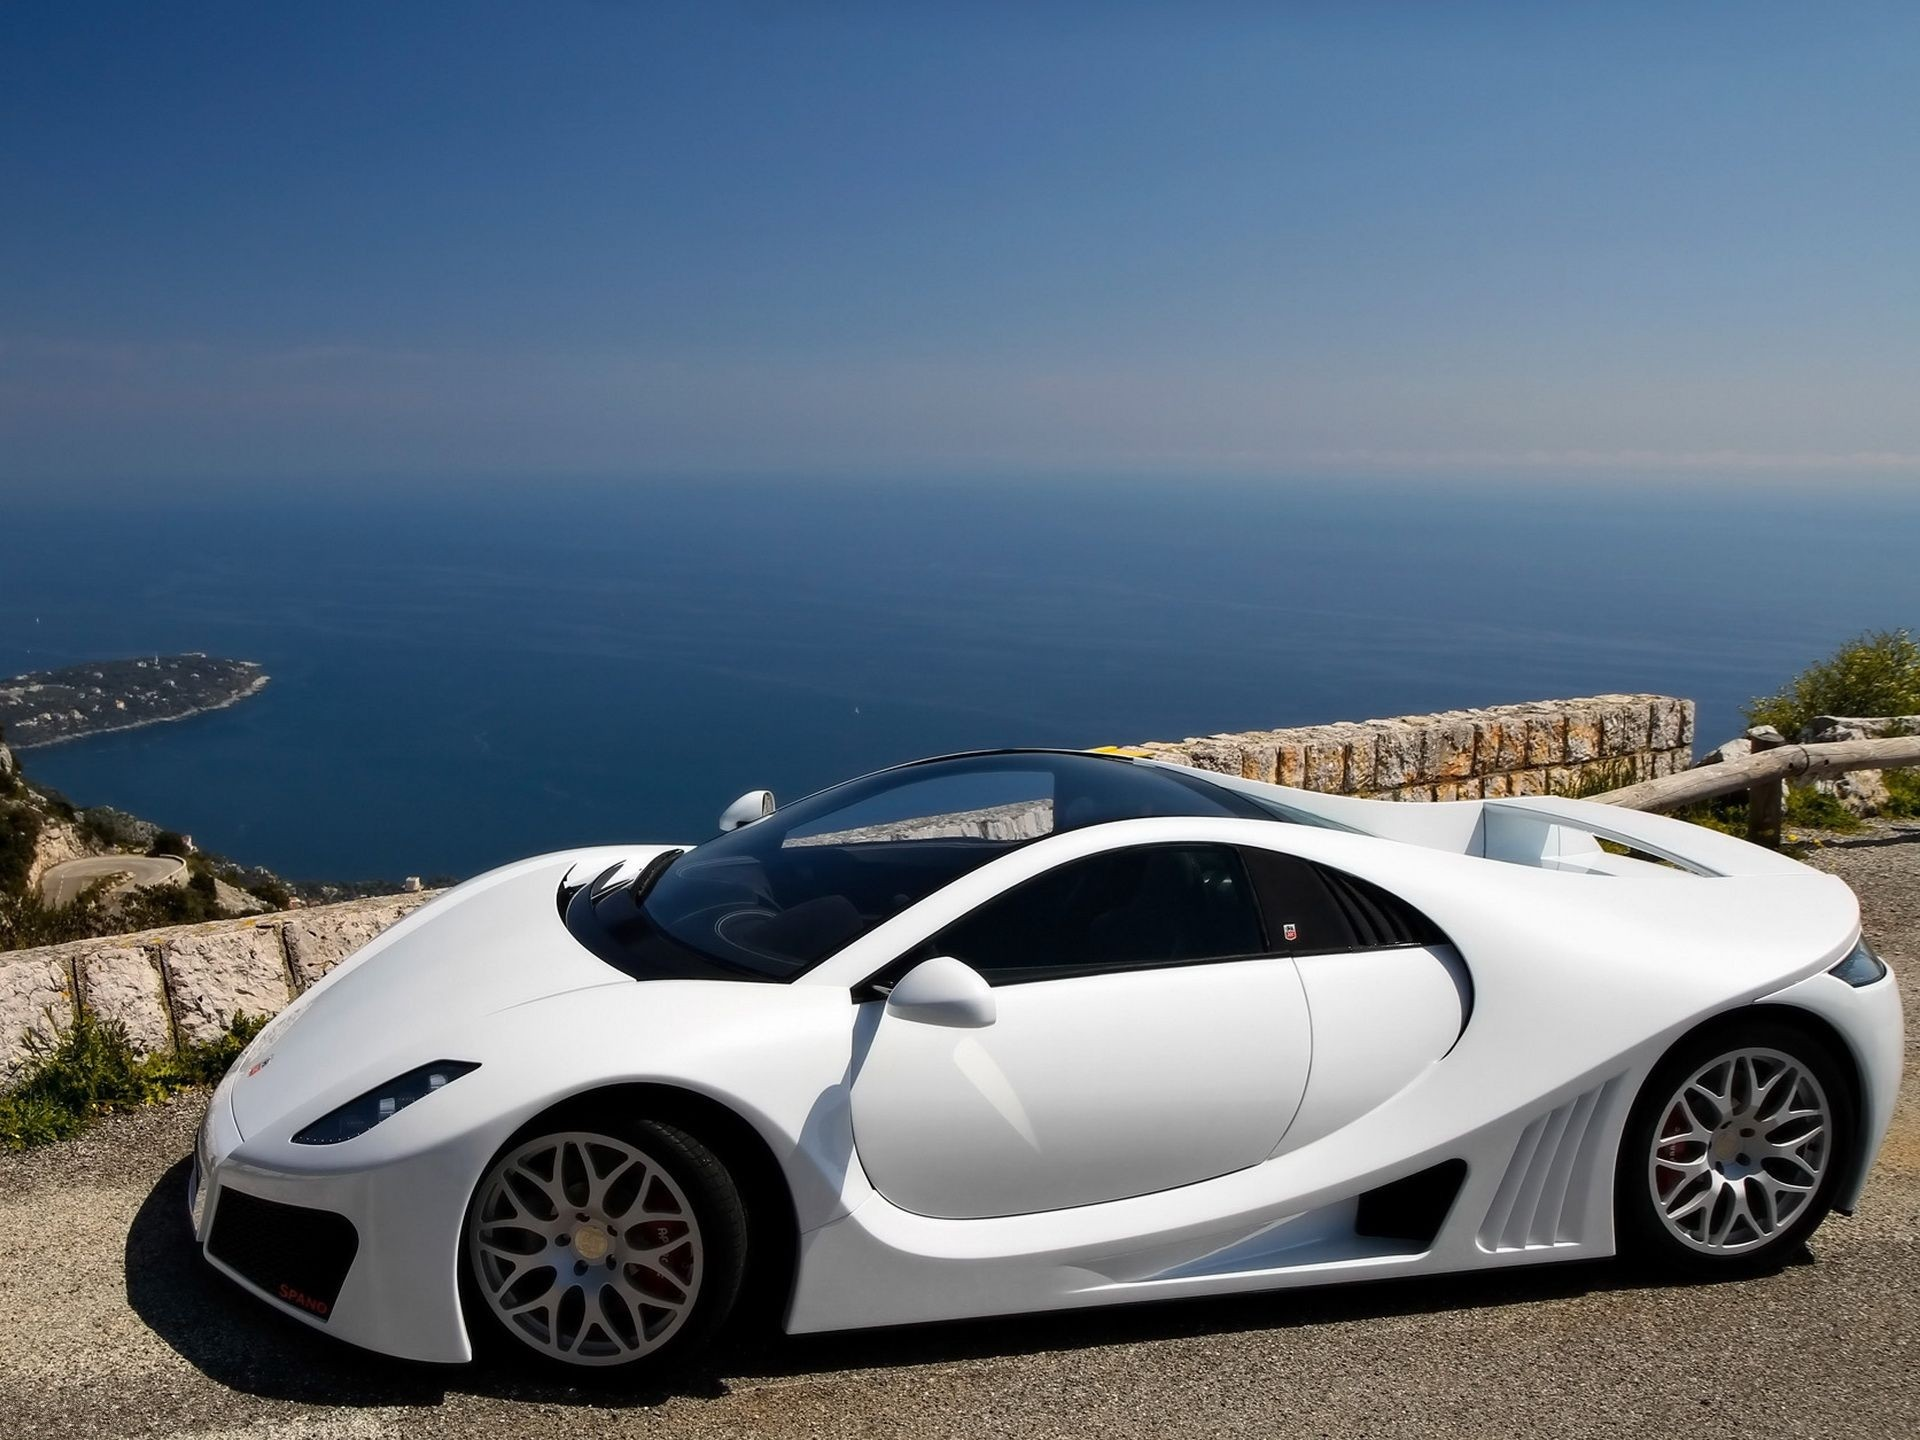 cars gta spano supercars desktop 1920x1440 hd wallpaper 1210367 1920x1440